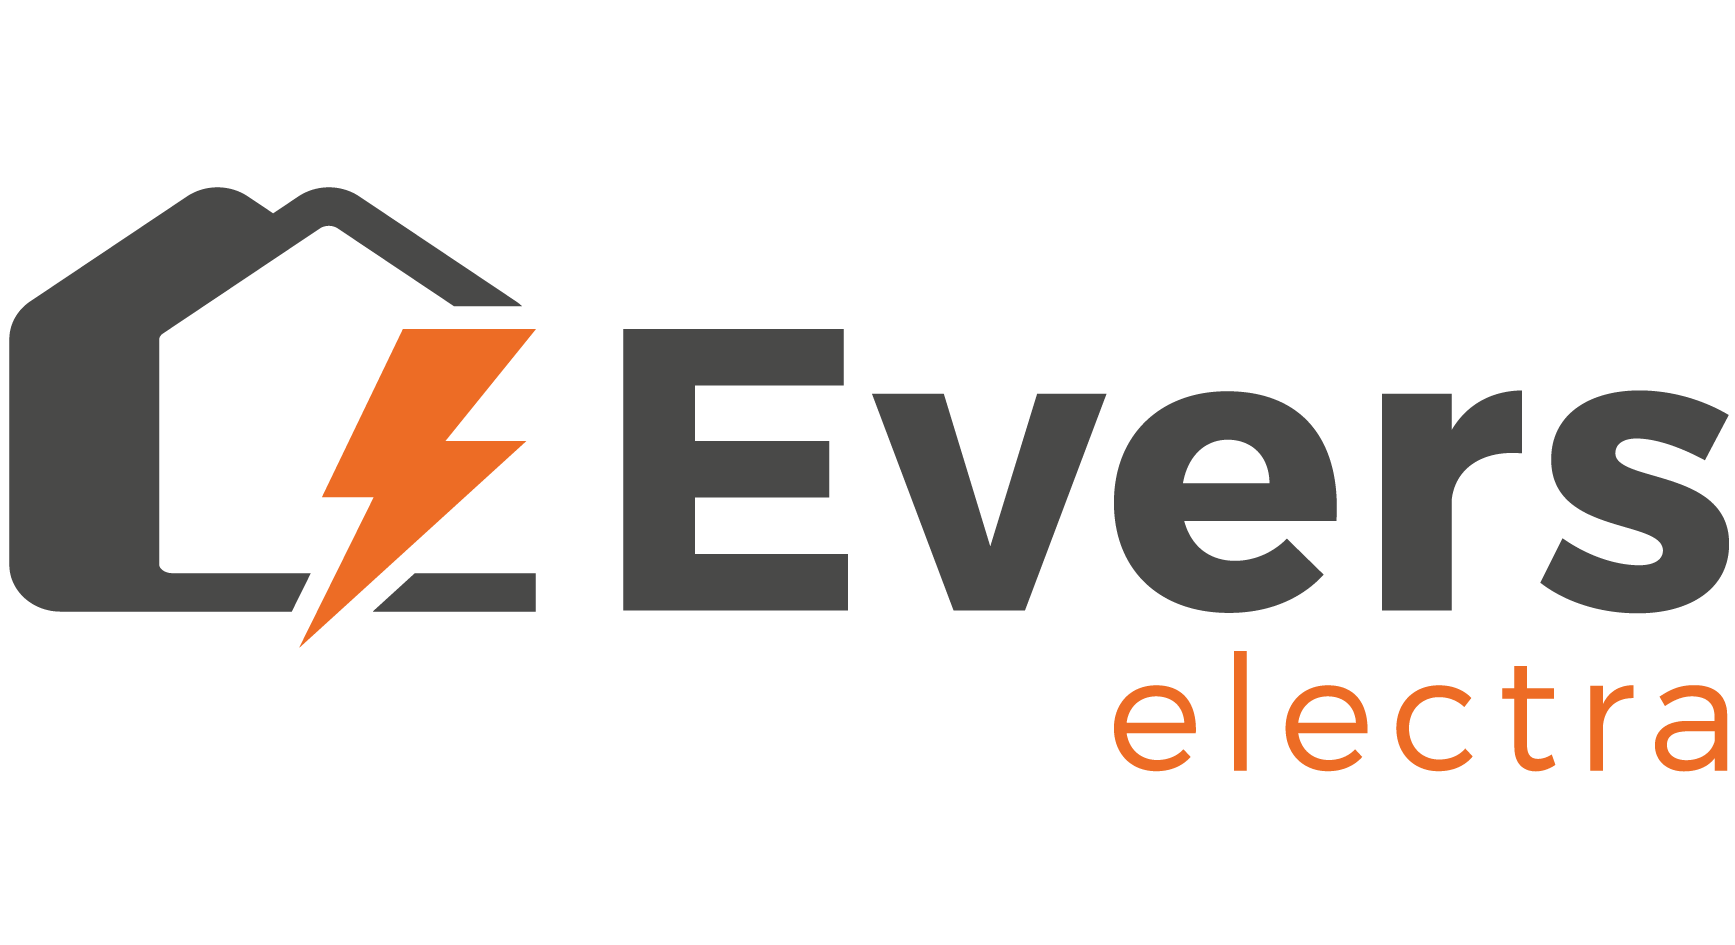 Evers electra